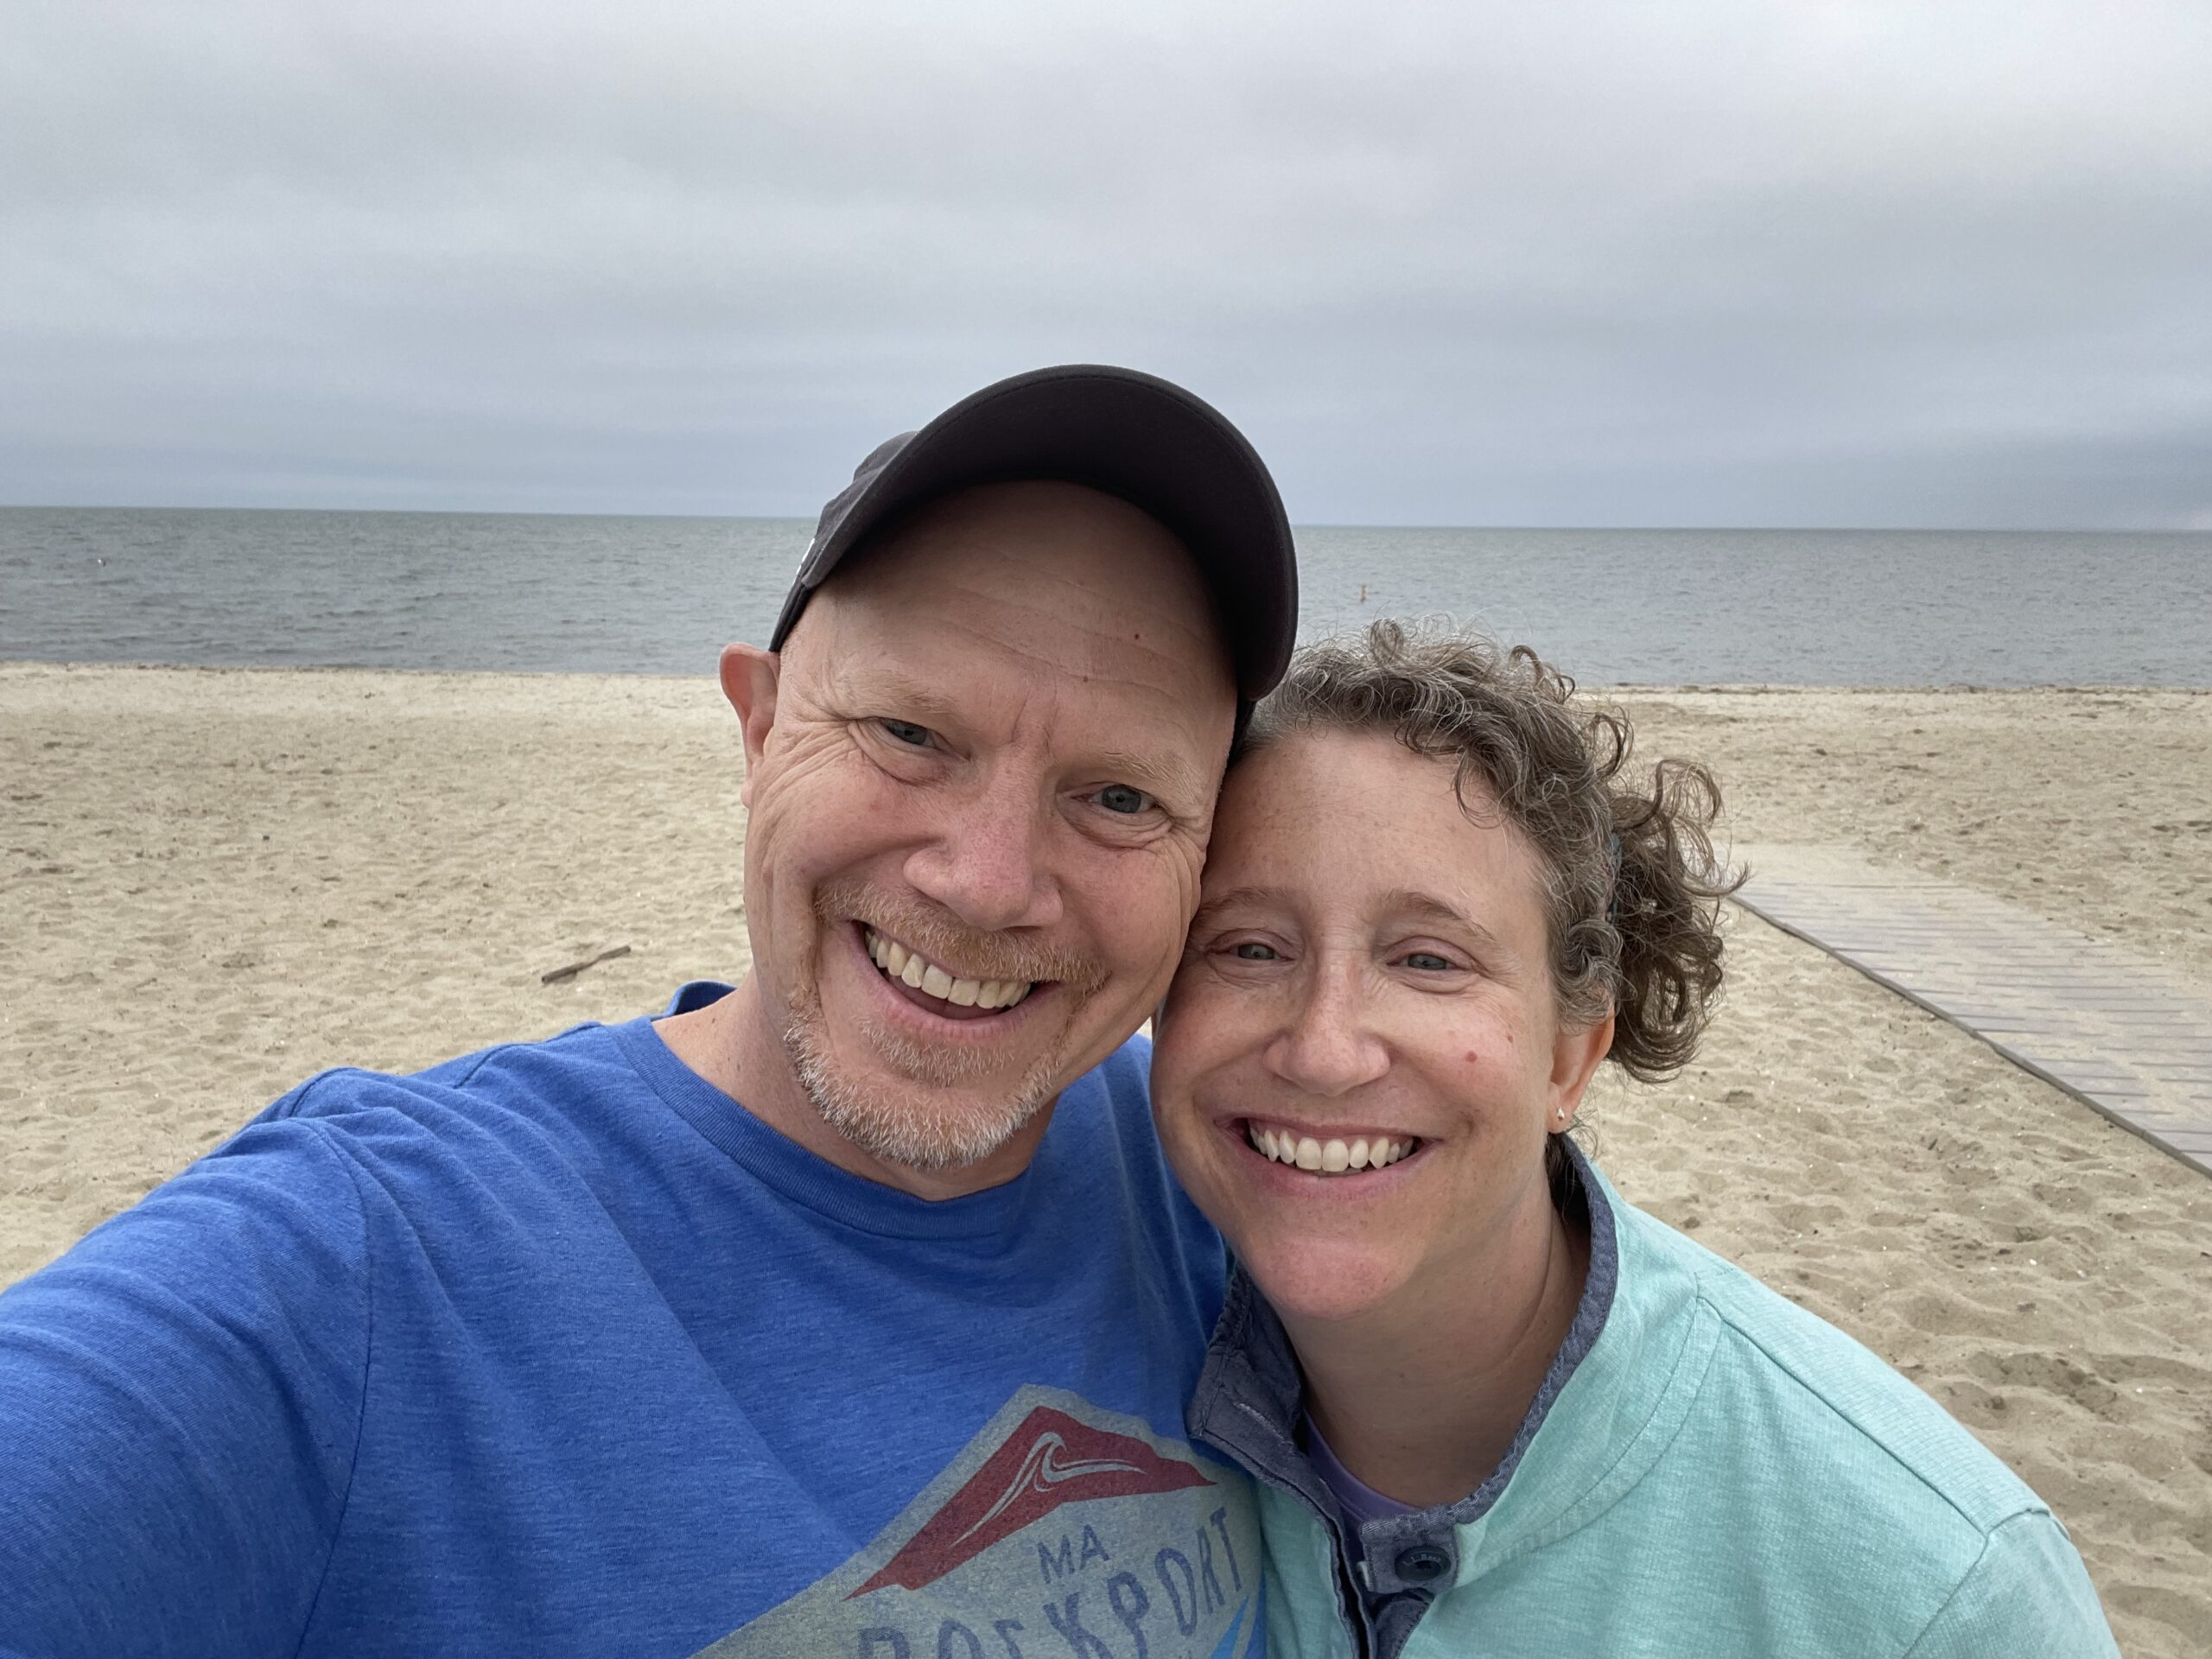 Selfie of a couple